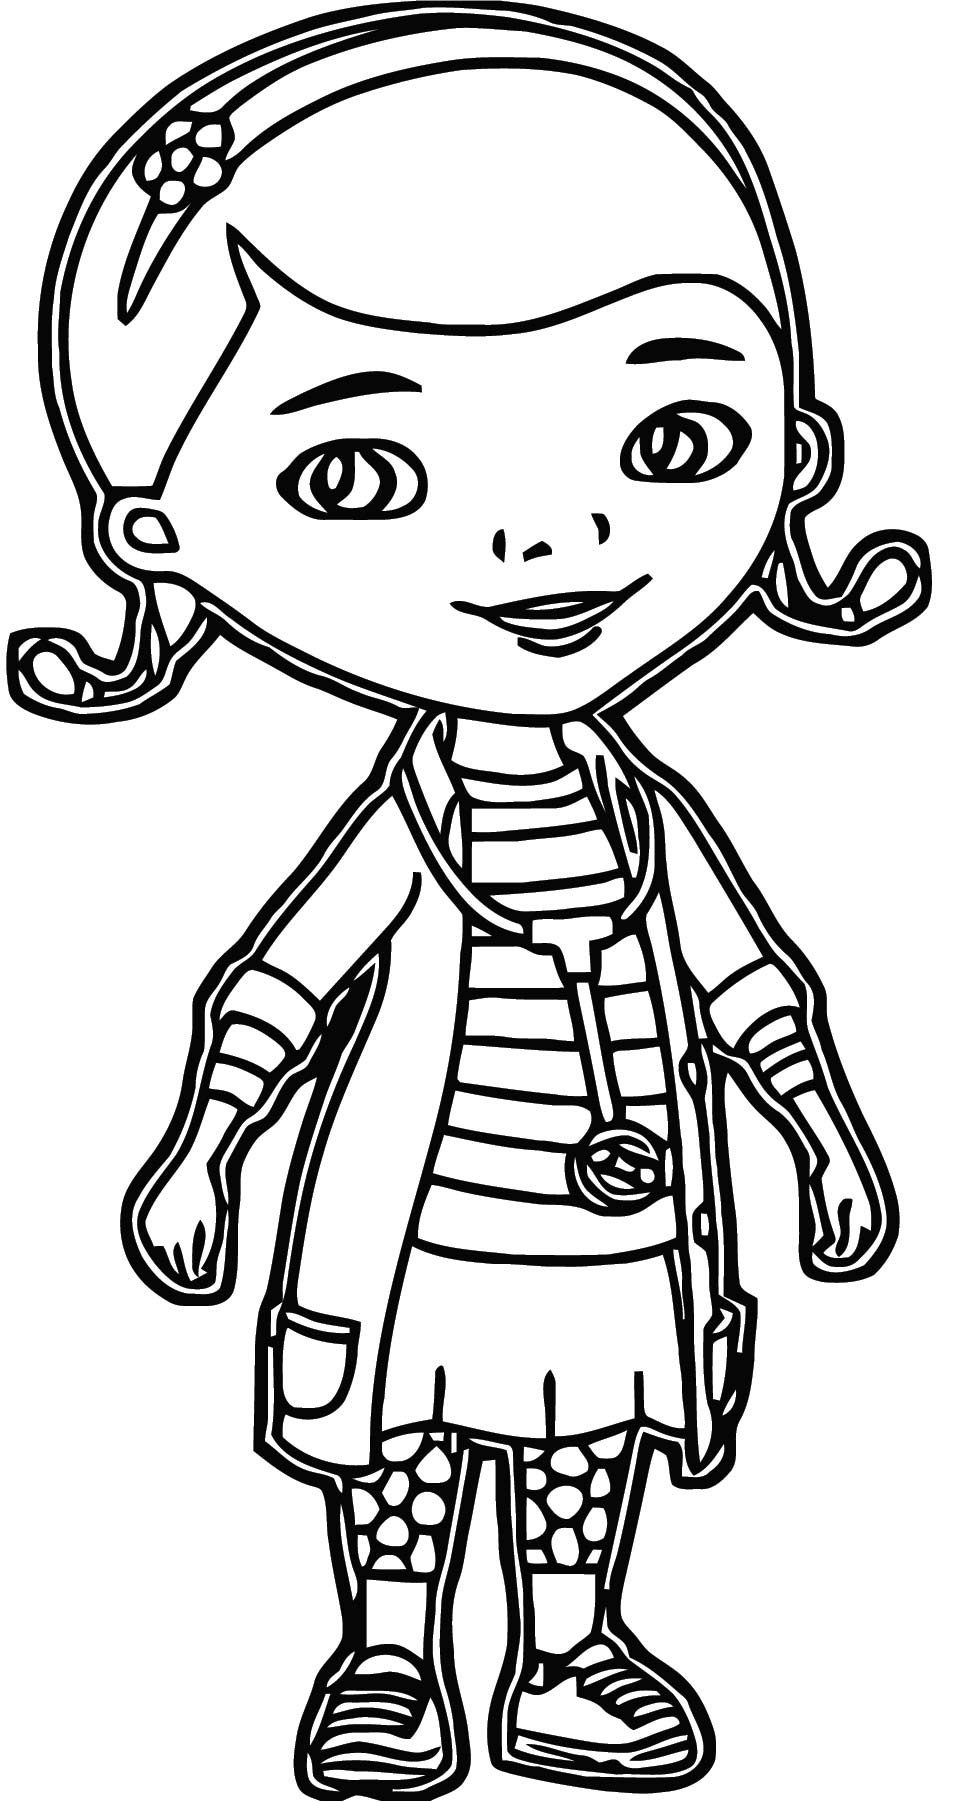 Mcstuffins Girl Doctor Coloring Page Waiting | Wecoloringpage.com